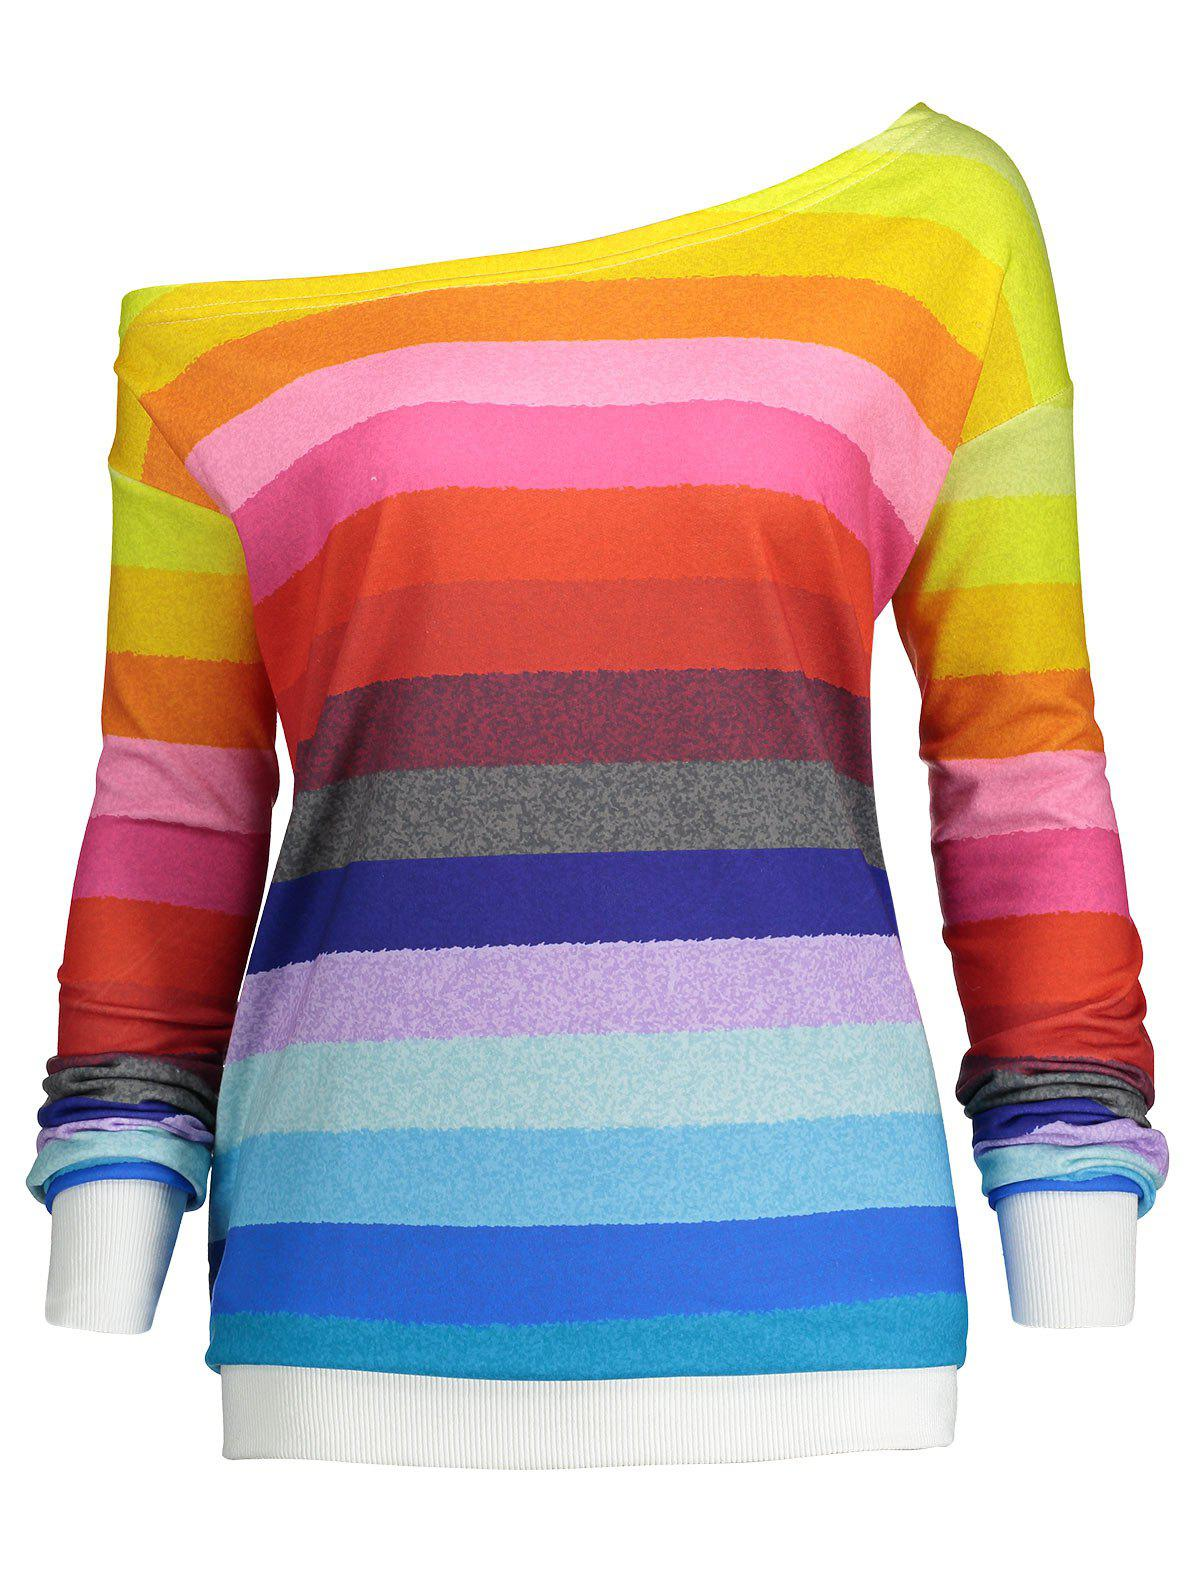 Rainbow Print Plus Size One Shoulder SweatshirtWOMEN<br><br>Size: 2XL; Color: RAINBOW; Material: Polyester,Spandex; Shirt Length: Regular; Sleeve Length: Full; Style: Fashion; Pattern Style: Others; Season: Fall,Spring; Weight: 0.4200kg; Package Contents: 1 x Sweatshirt;